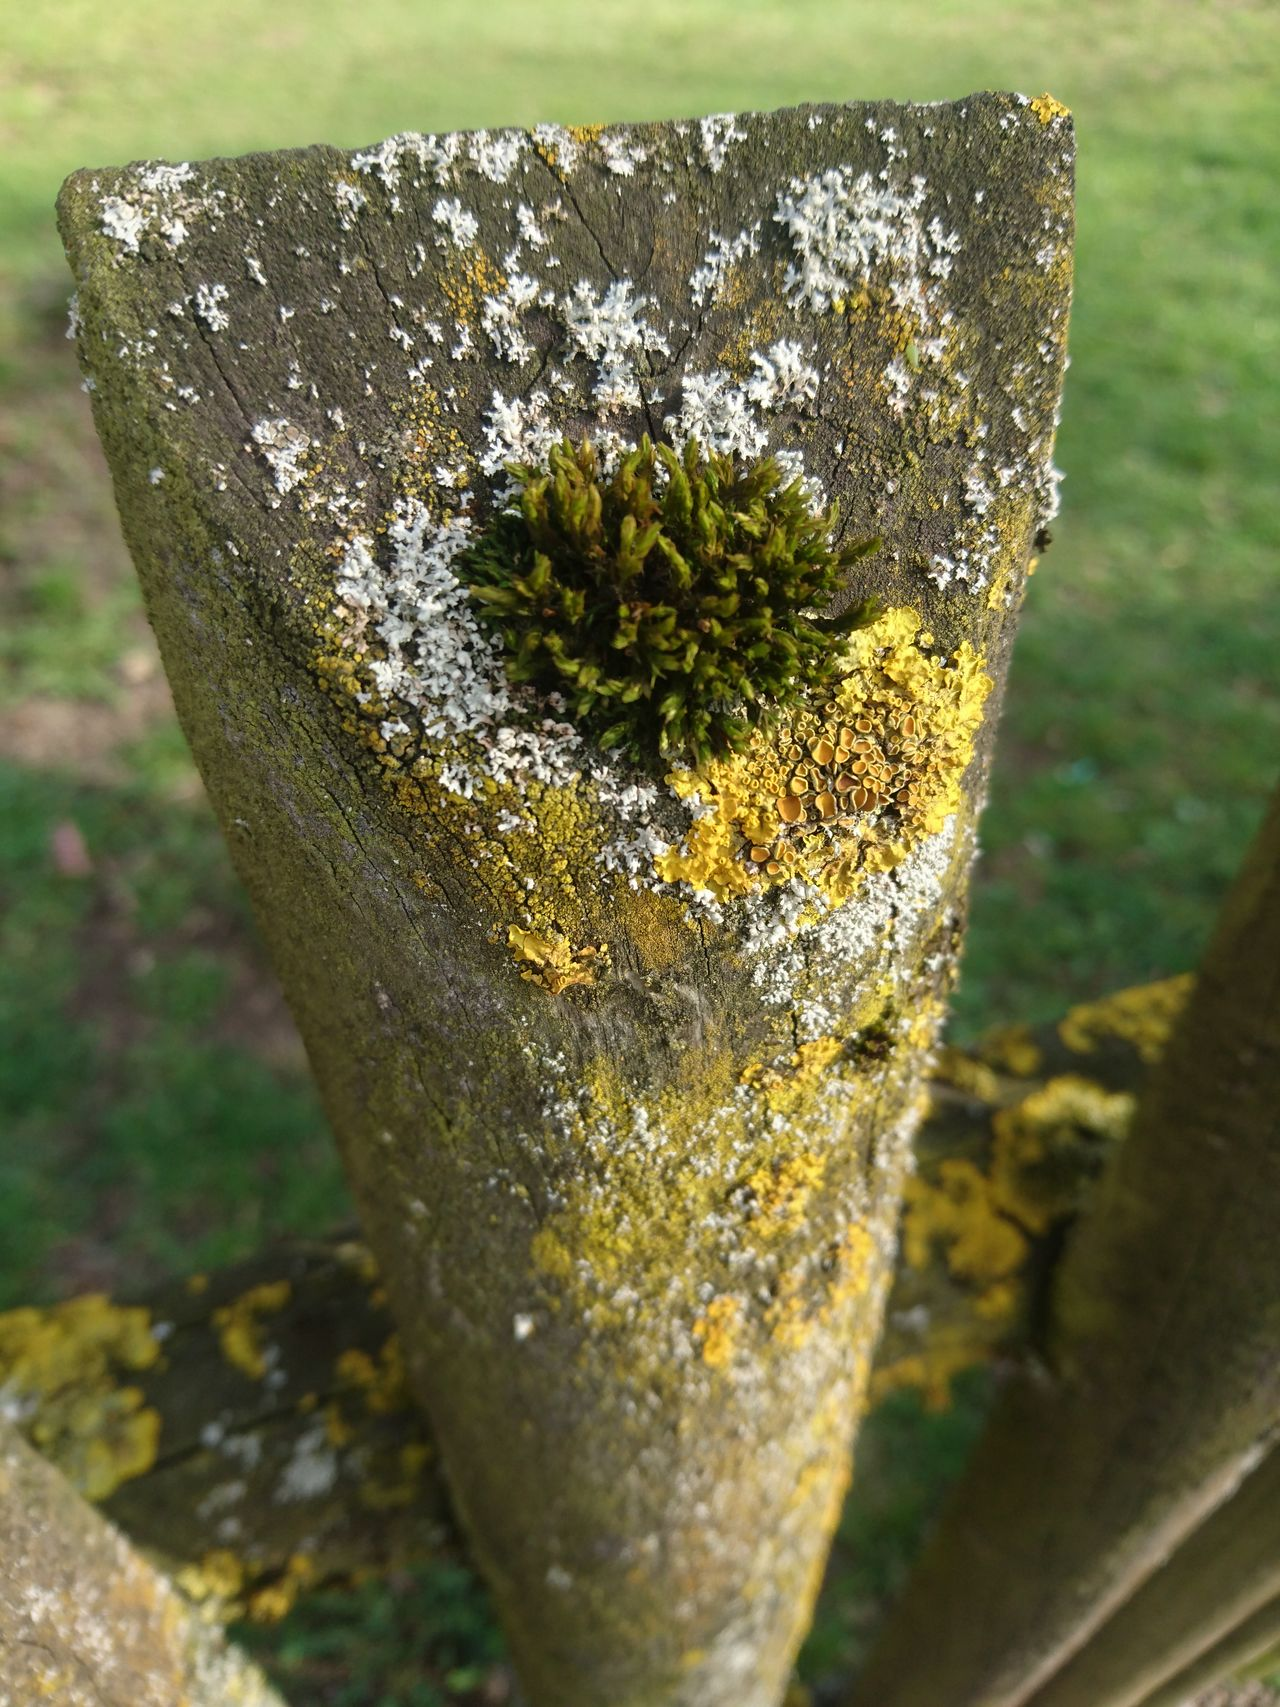 Close-up No People Nature Outdoors Day Beauty In Nature Freshness Wood - Material Moss-covered Moss Moss & Lichen Lichen